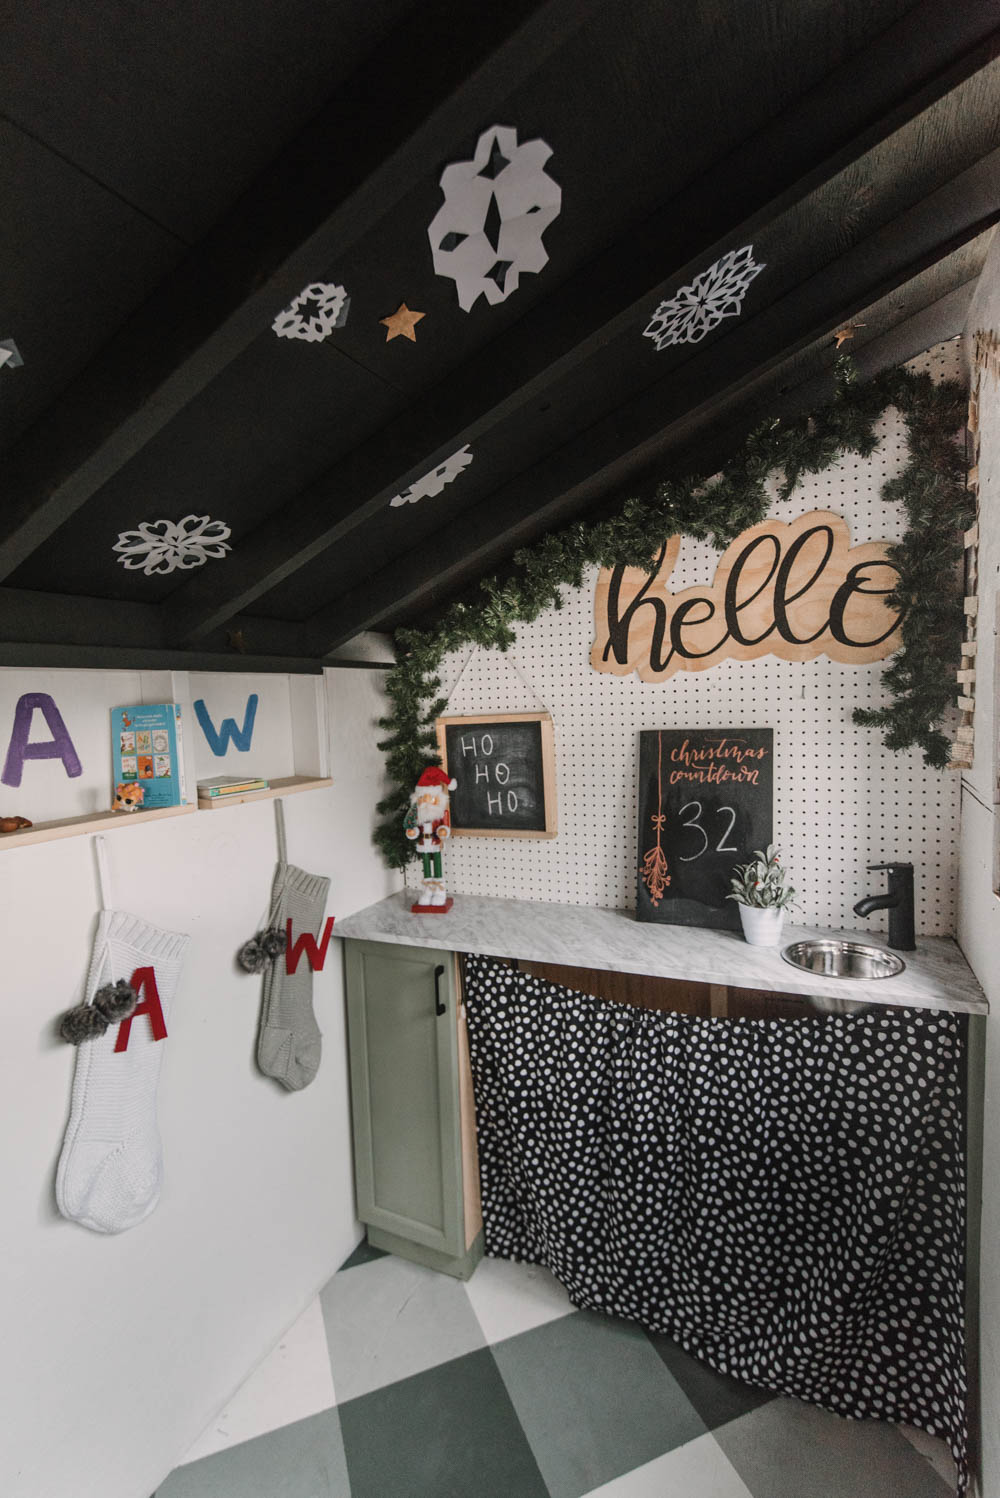 Christmas decorations for a kids playhouse